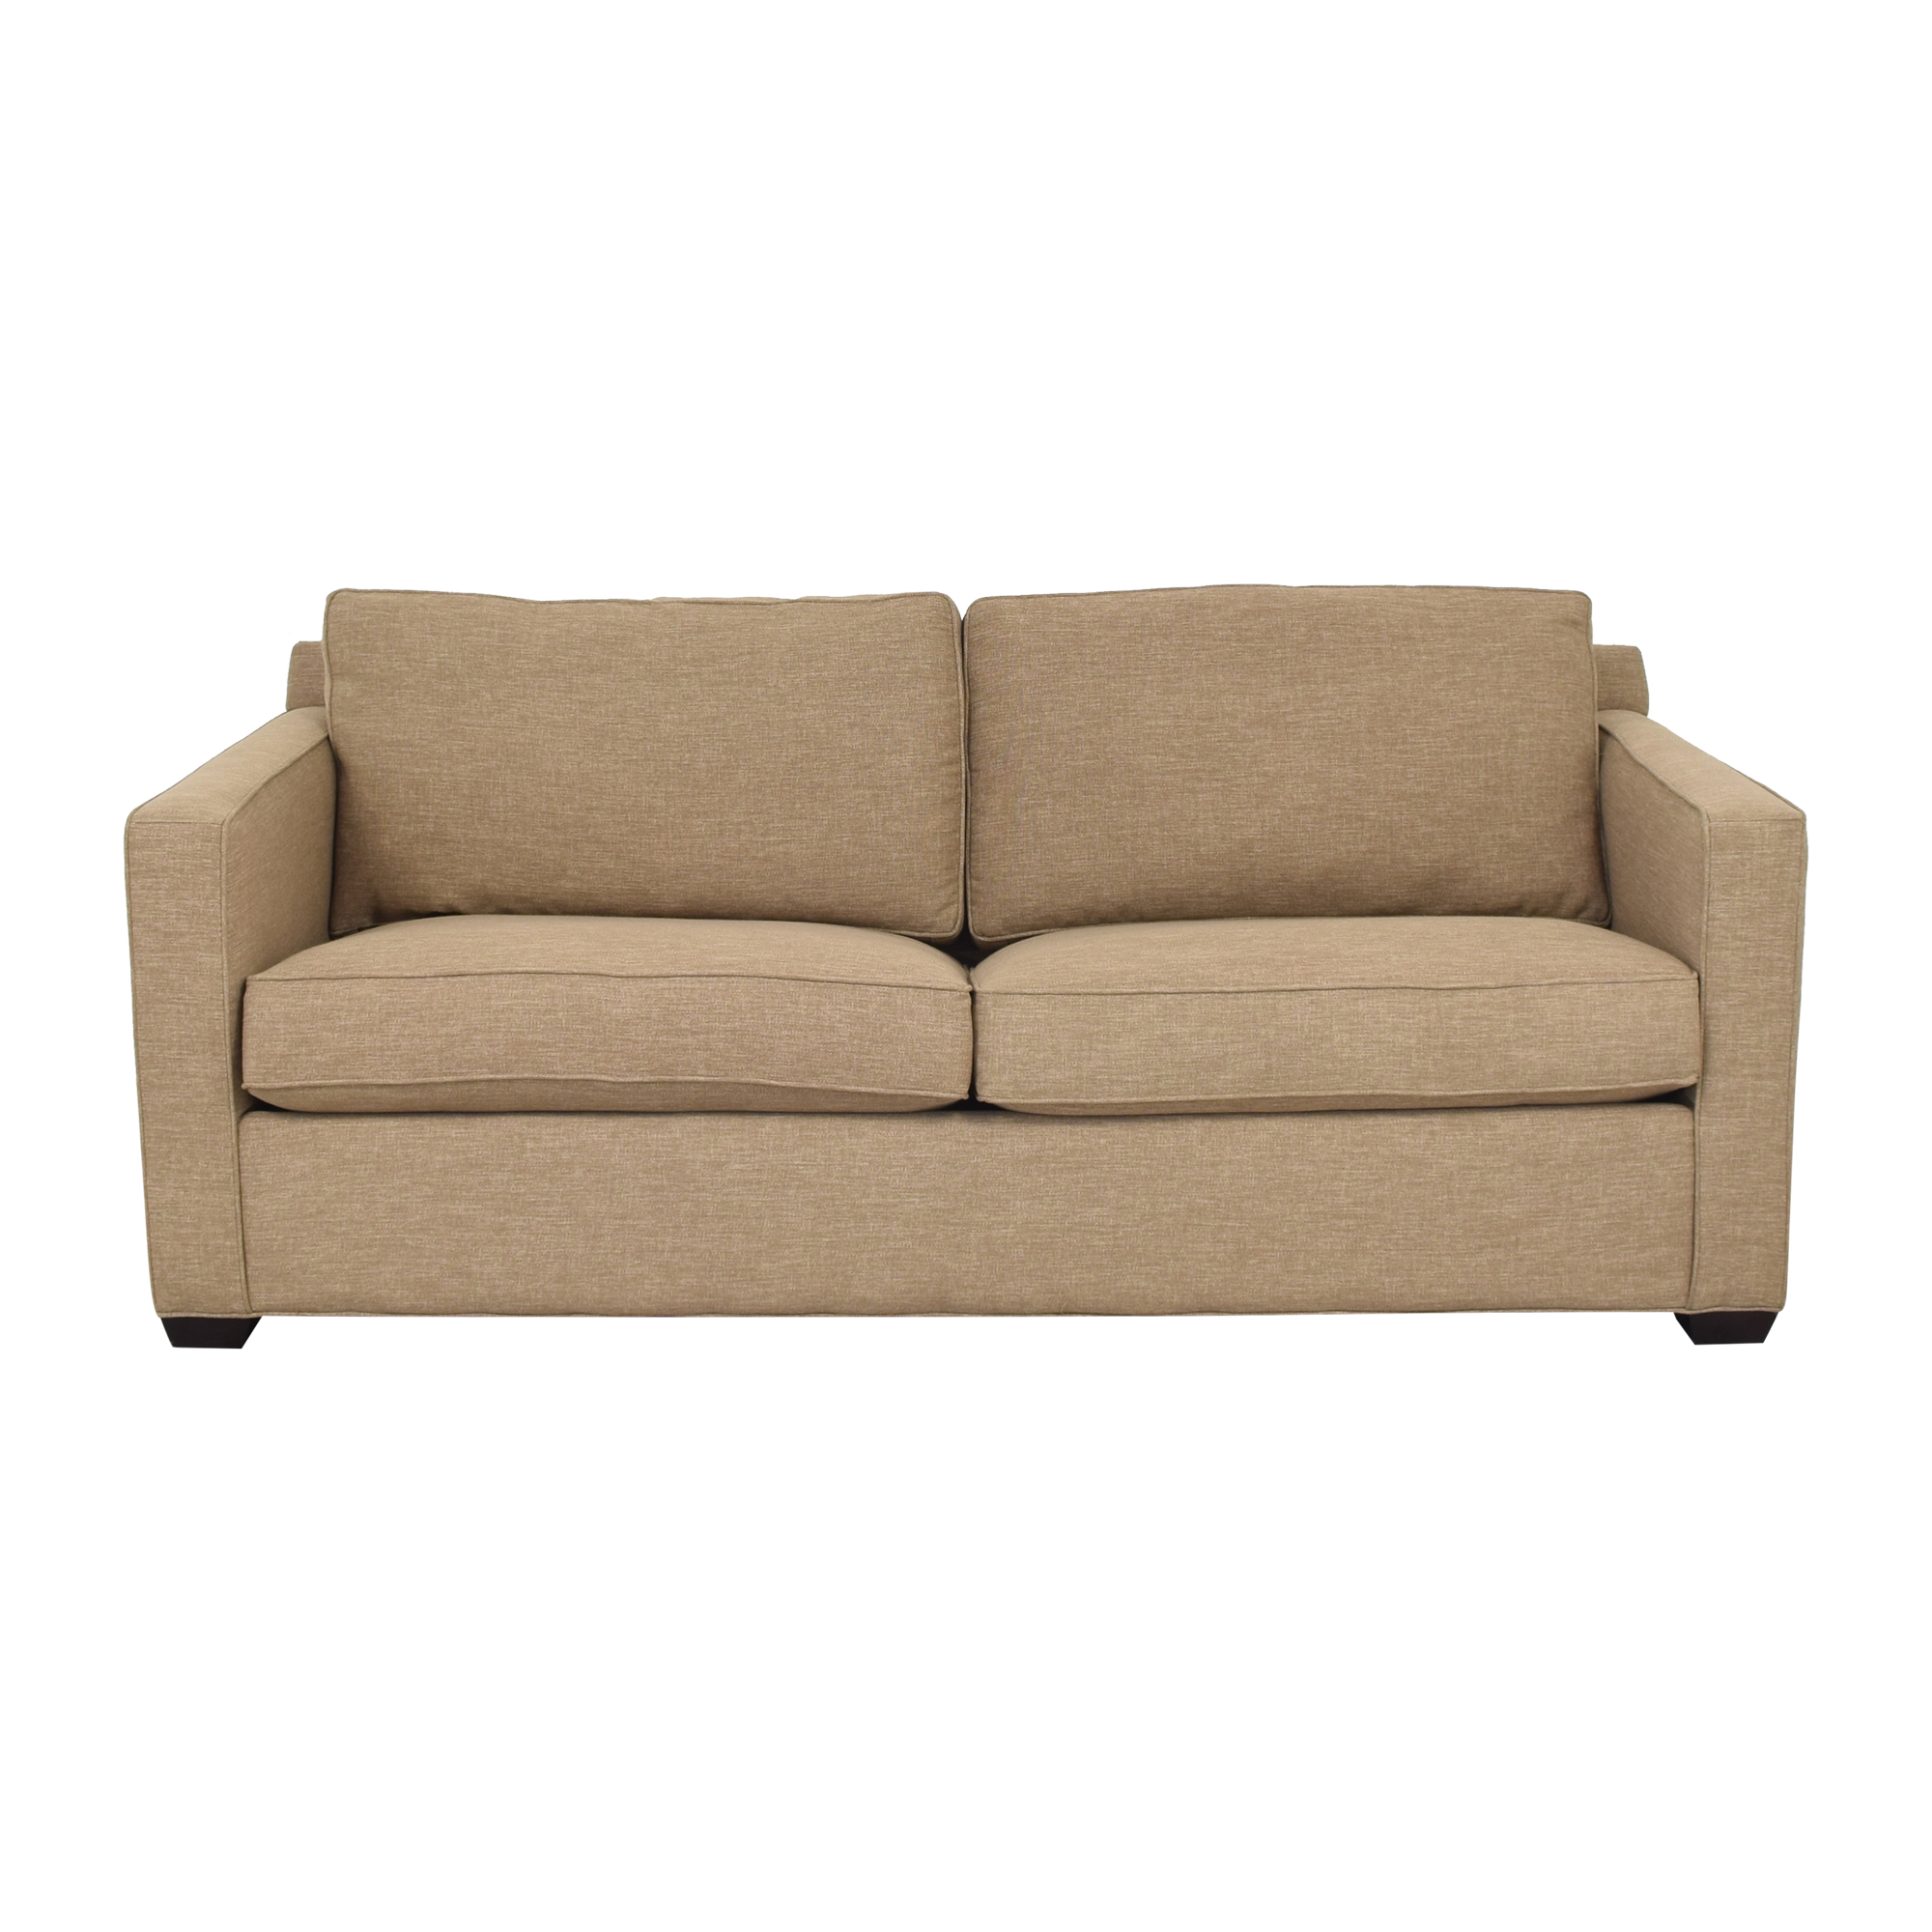 shop Crate & Barrel Davis Full Sleeper Sofa Crate & Barrel Sofas